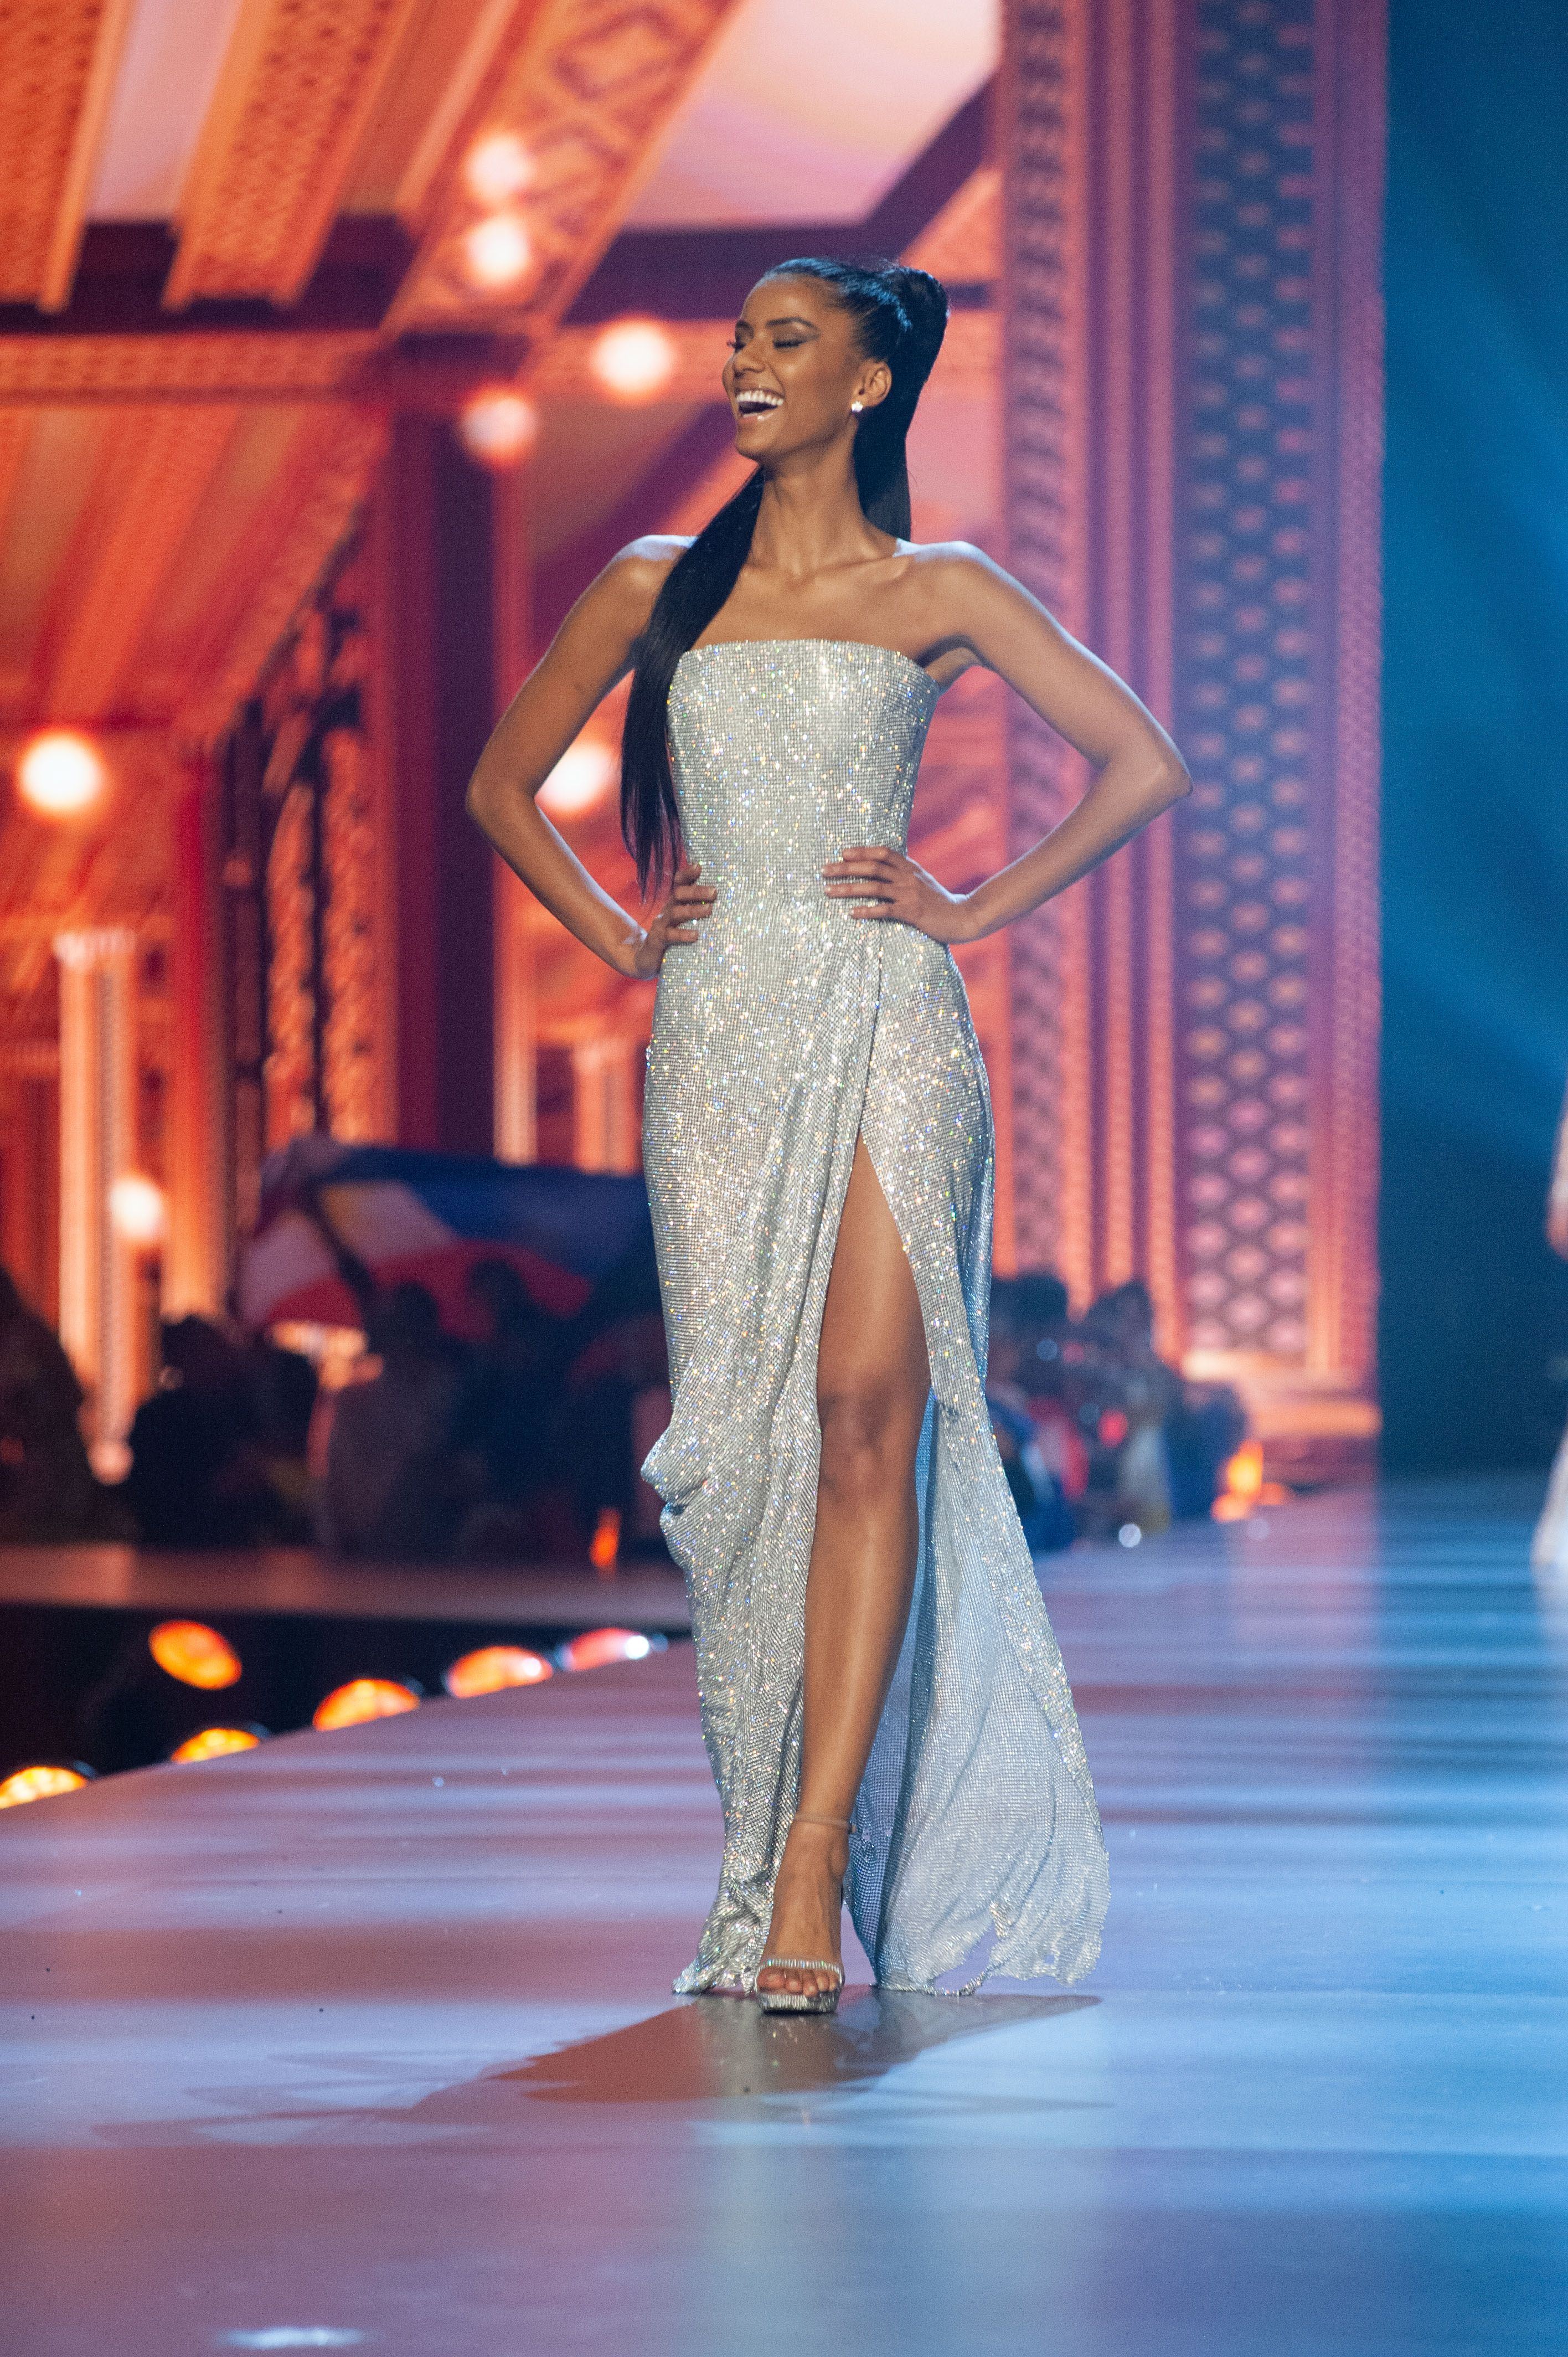 Tamaryn Green, Miss Universe South Africa 2018 competes on